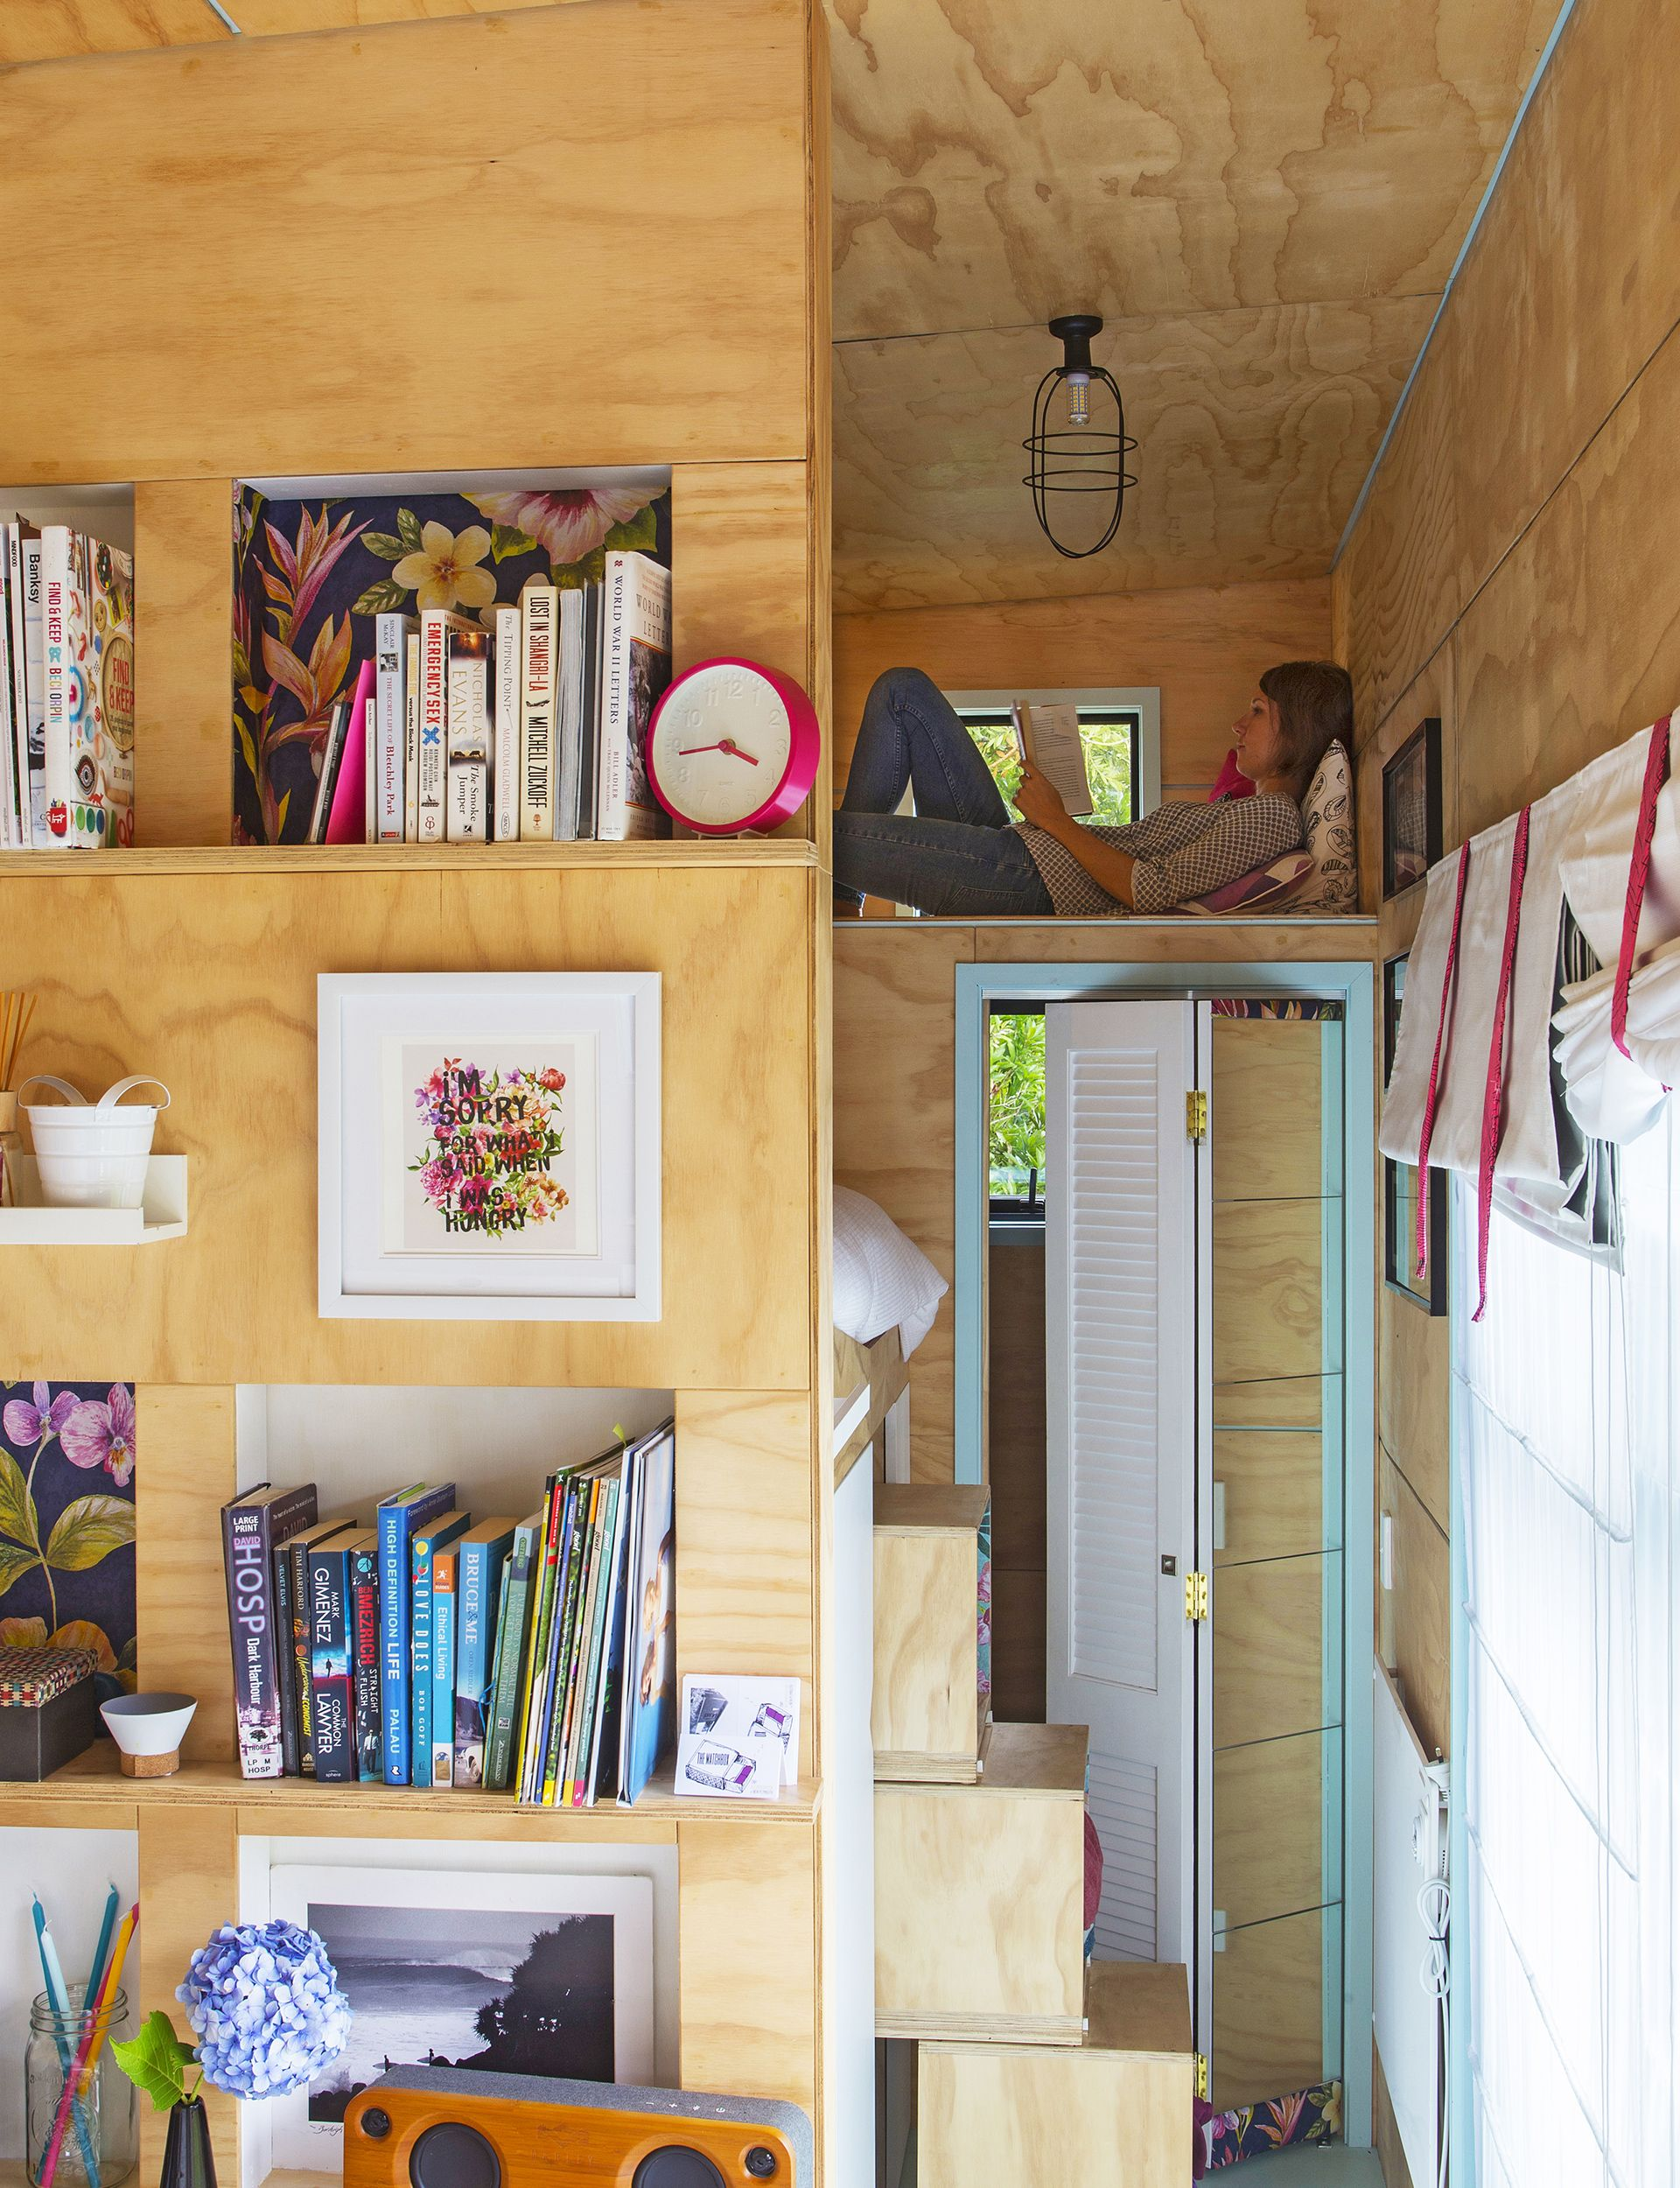 D life home interiors a house the size of a shipping container has everything its owners